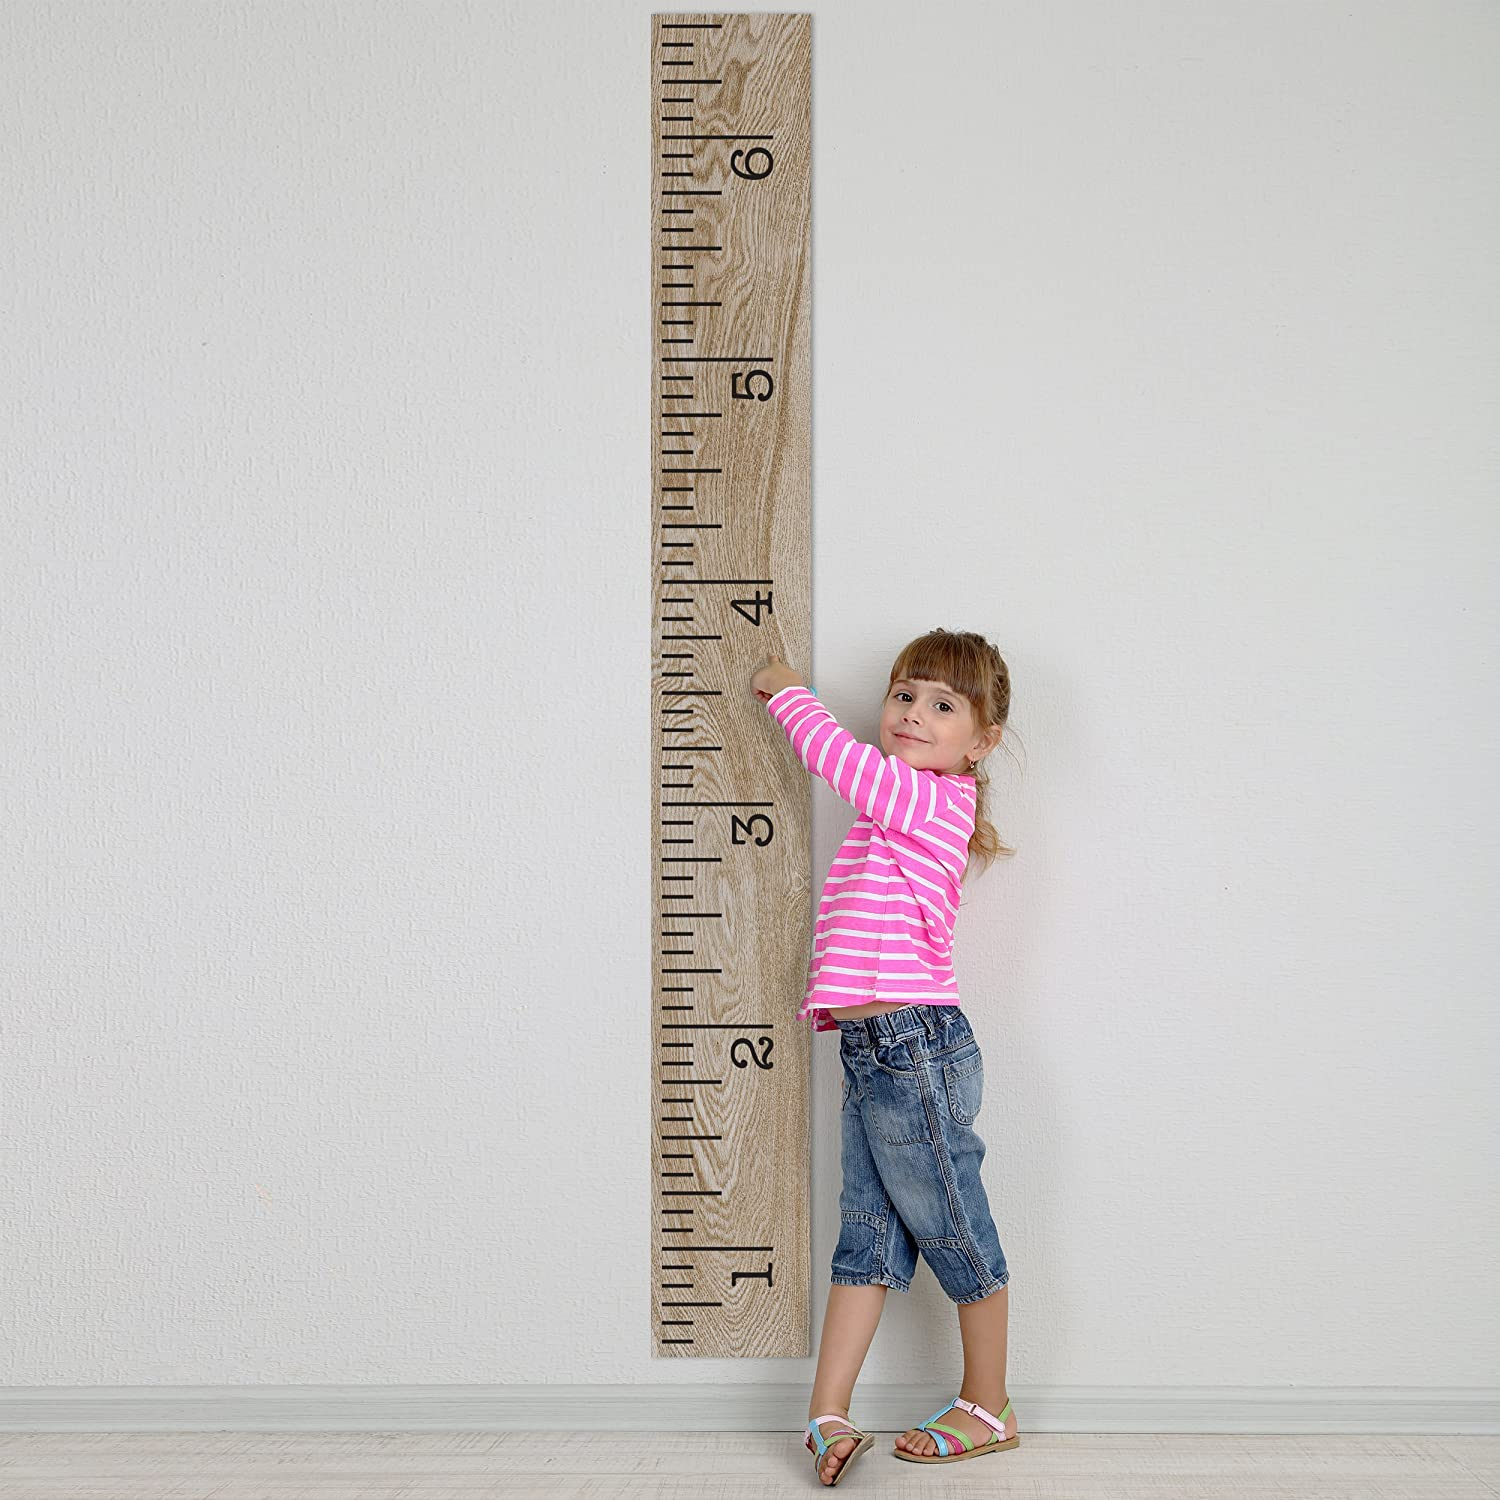 Kids growth chart decal stickers wall diy applications home decor product description full growth chart geenschuldenfo Choice Image